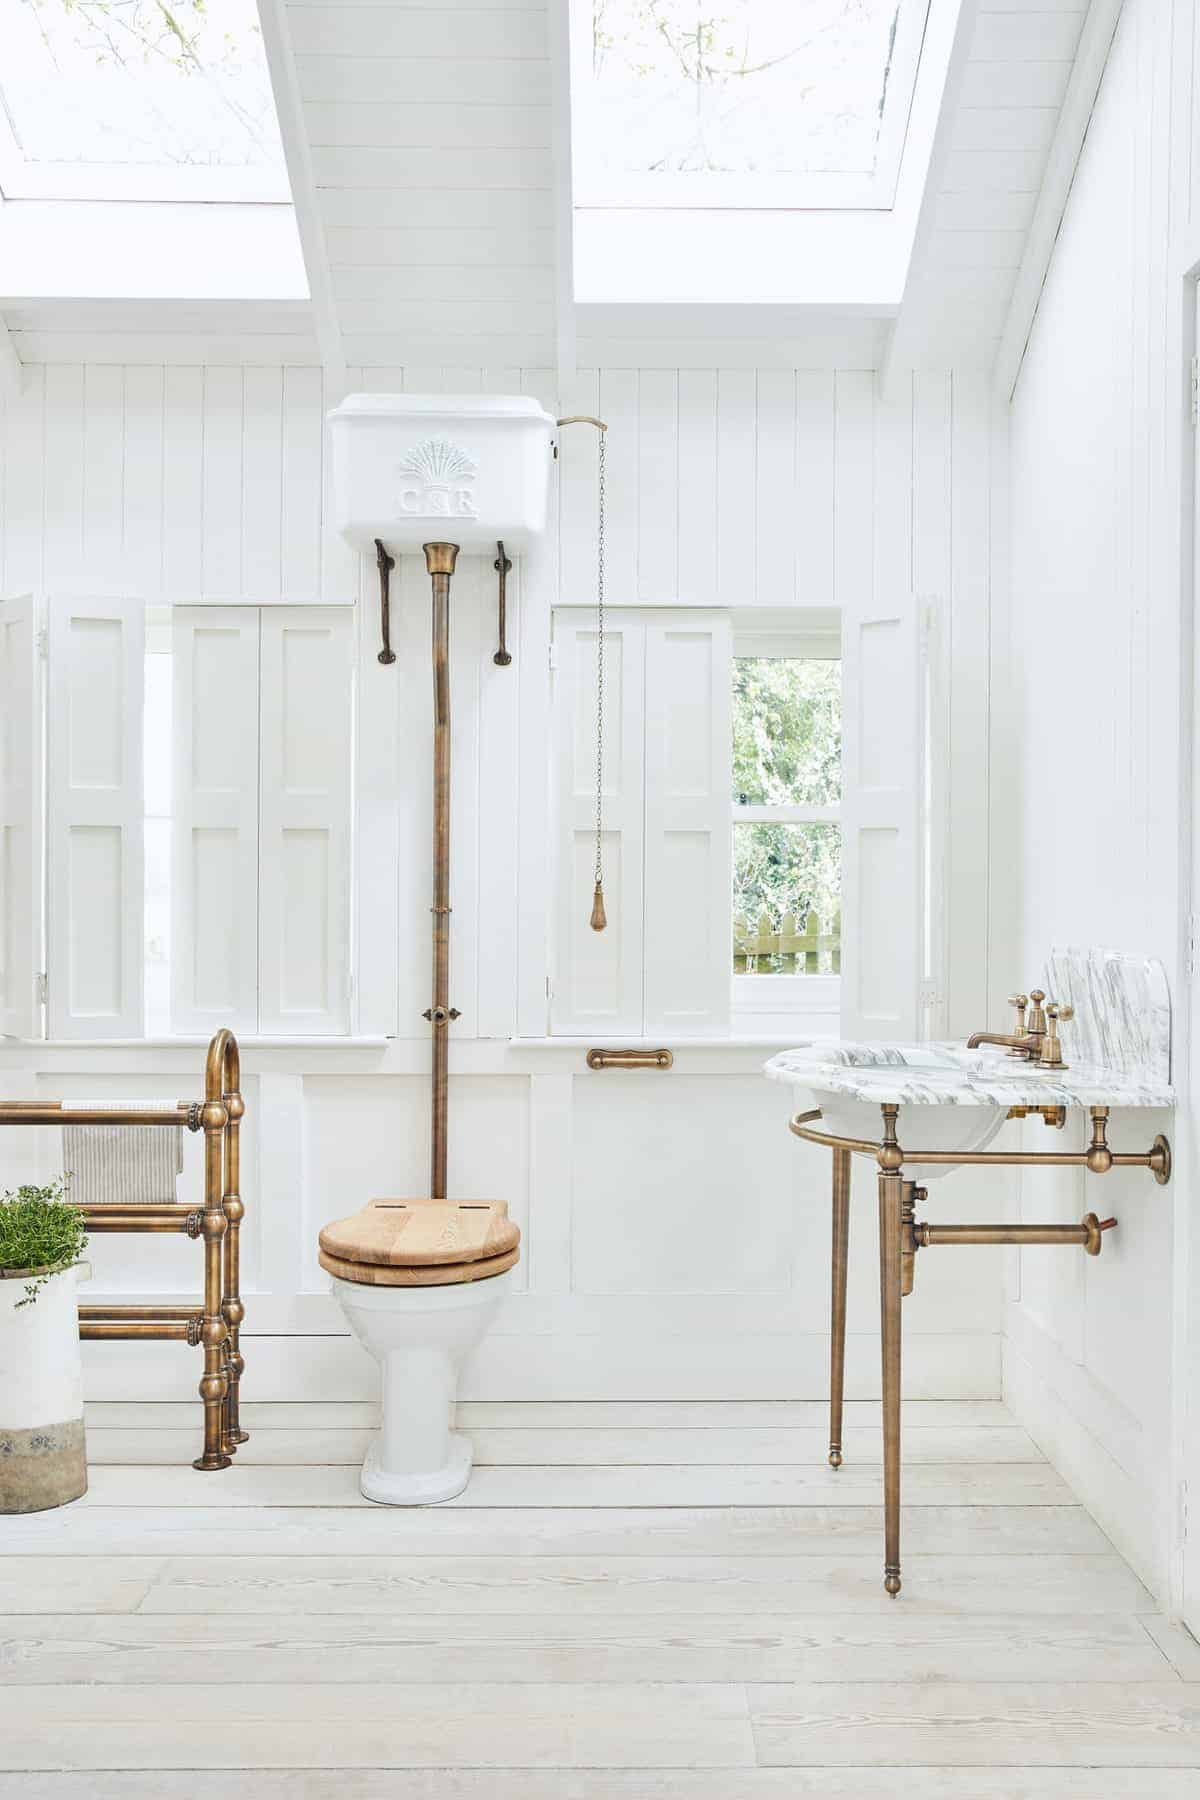 RS6342_HIGH_LEVEL_WHEATSHEAF_CISTERN_ENSEMBLE_PAINTED_WHITE_WITH_AGED_BRASS_FITTINGS_WITH_VICTORIA_WC_PAN_5526